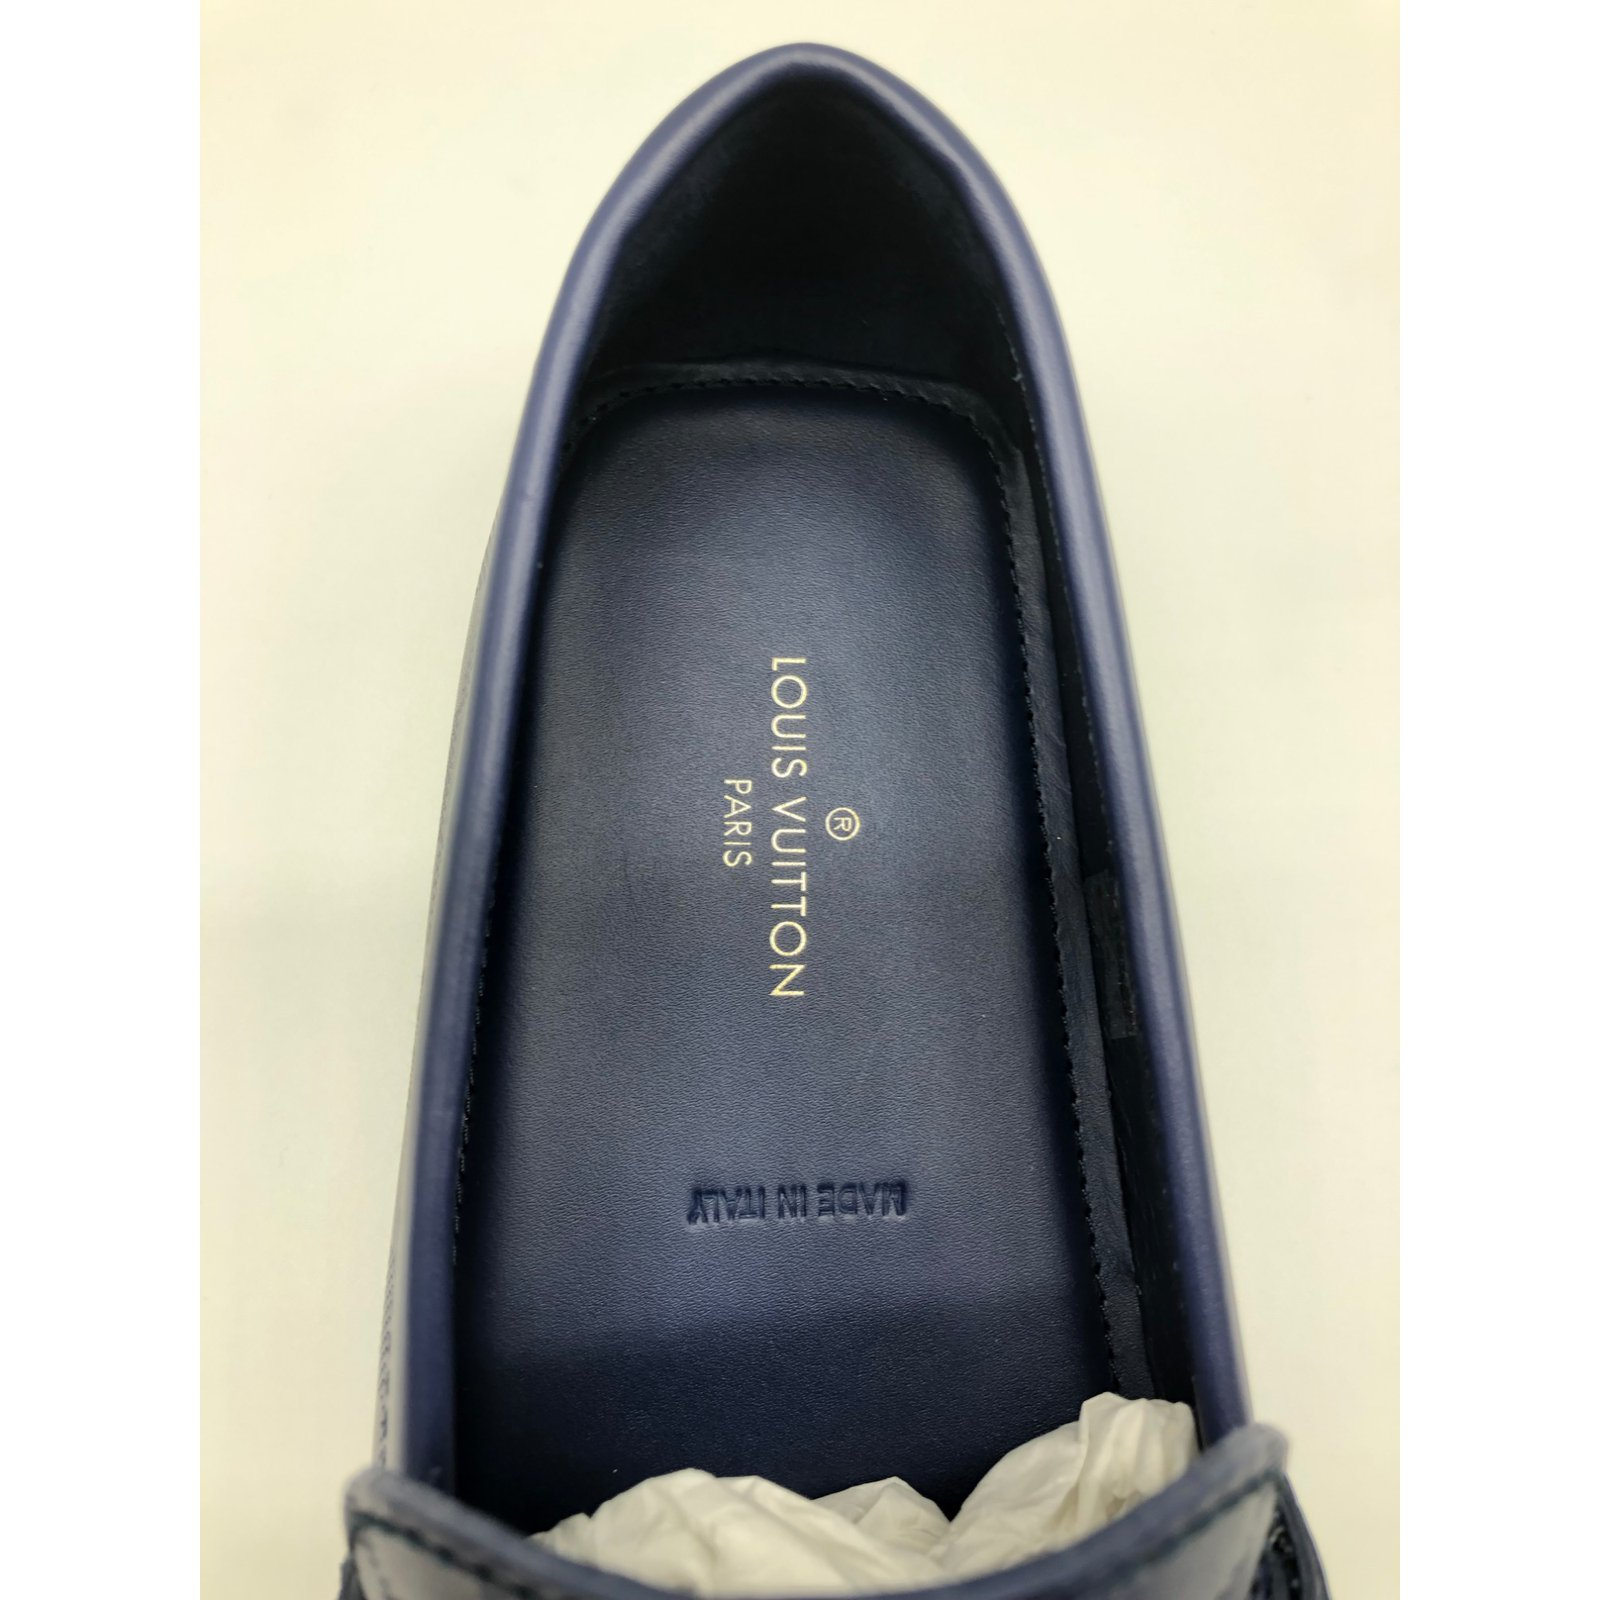 f2522f7f45d1 Louis Vuitton Louis Vuitton Hockenheim model moccasins in navy checkered  leather